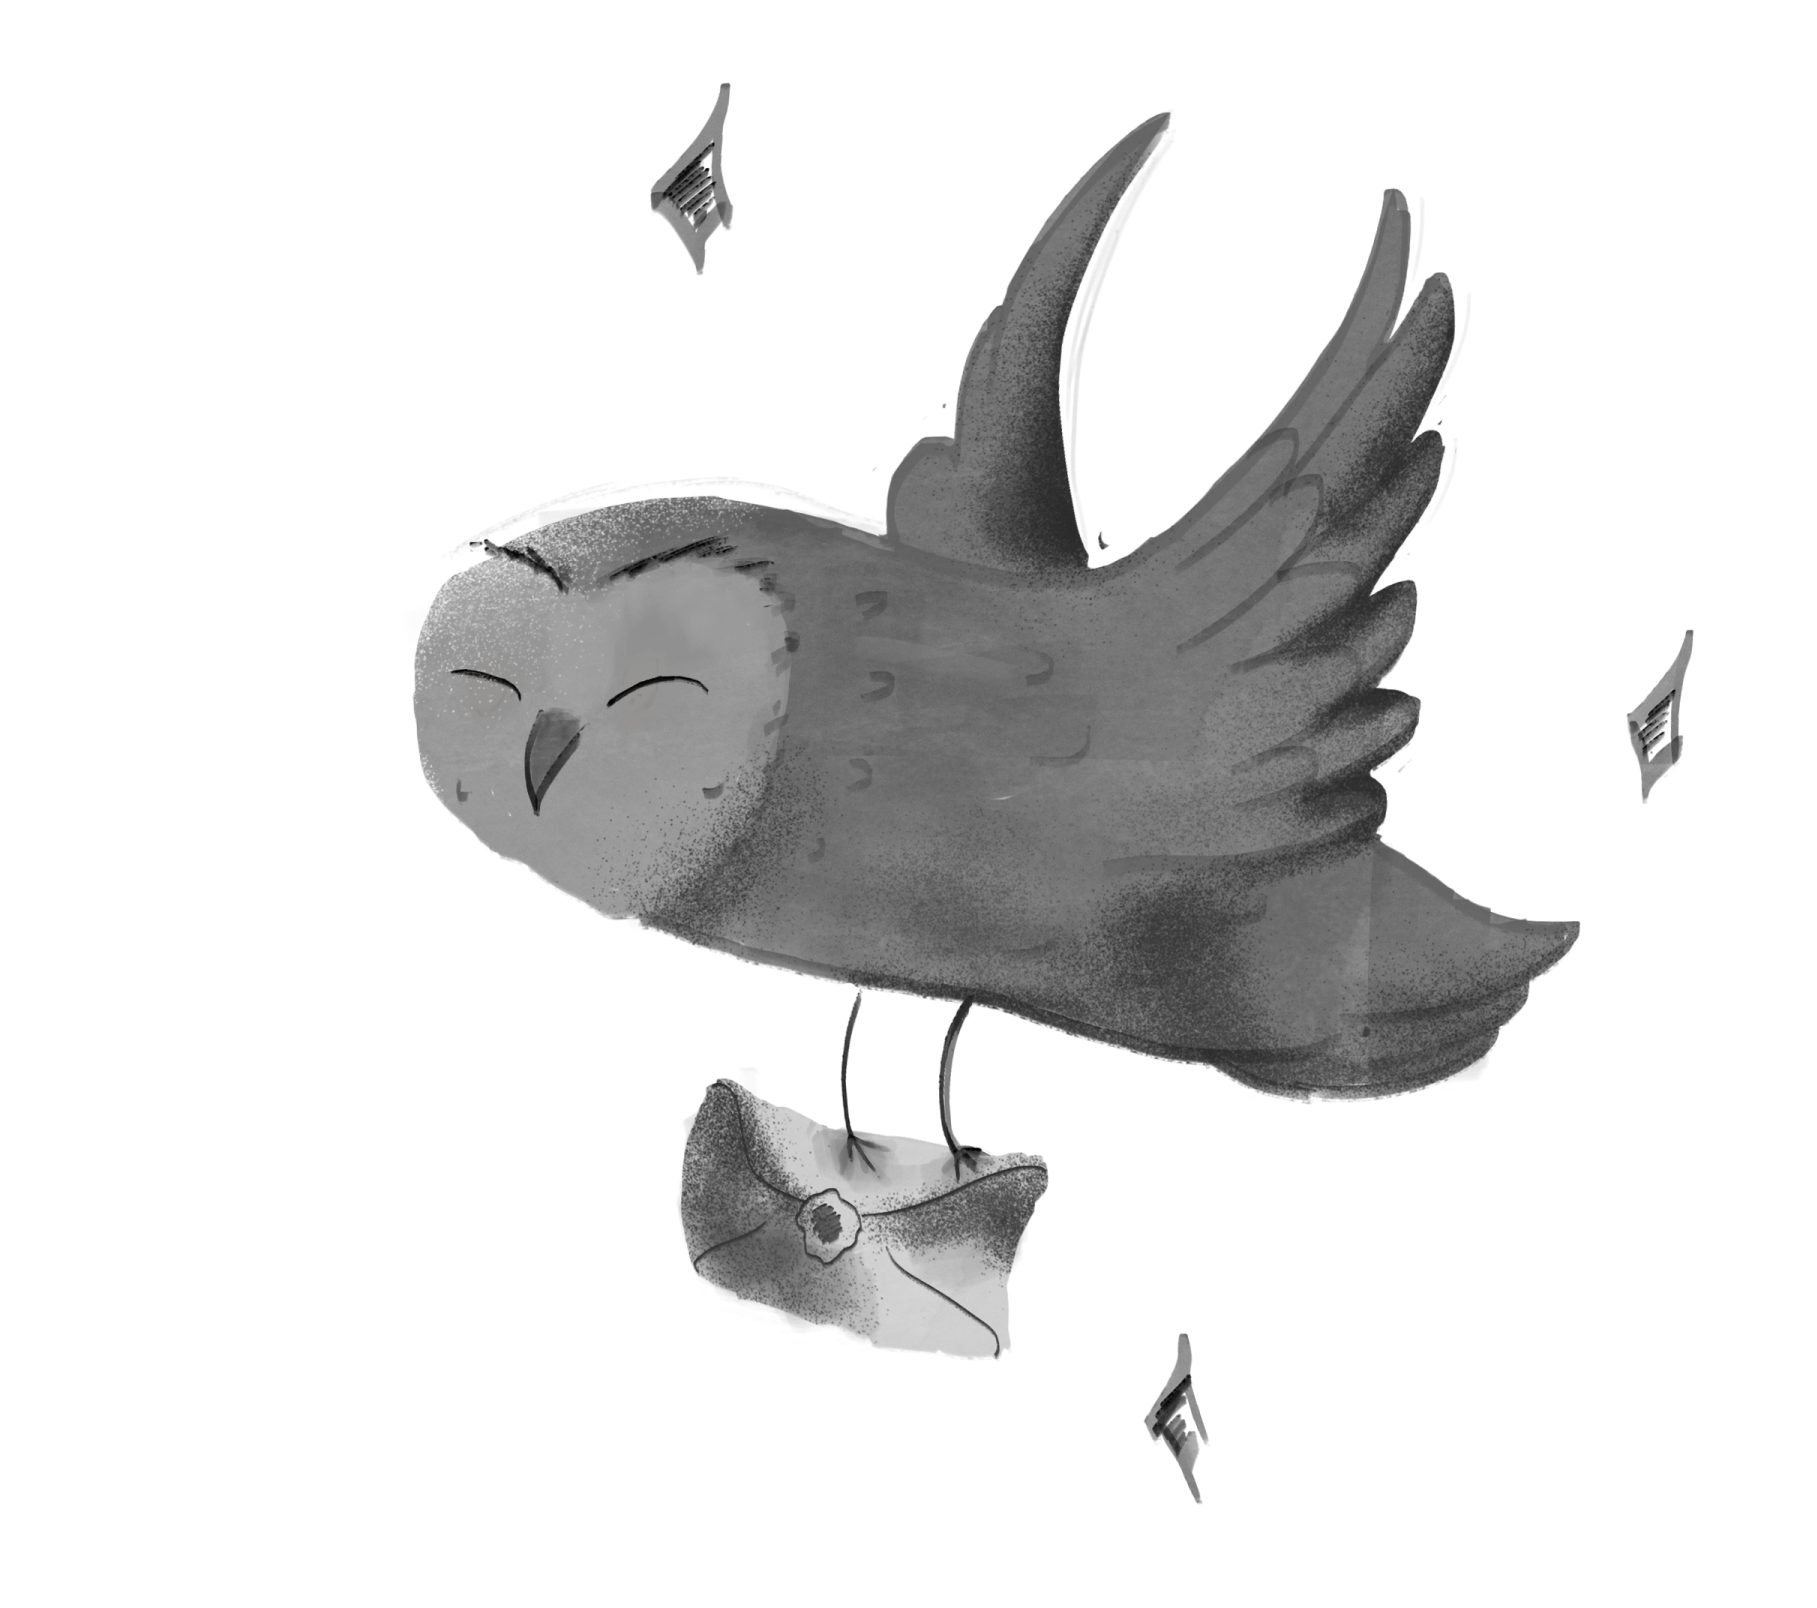 flying owl carrying a letter